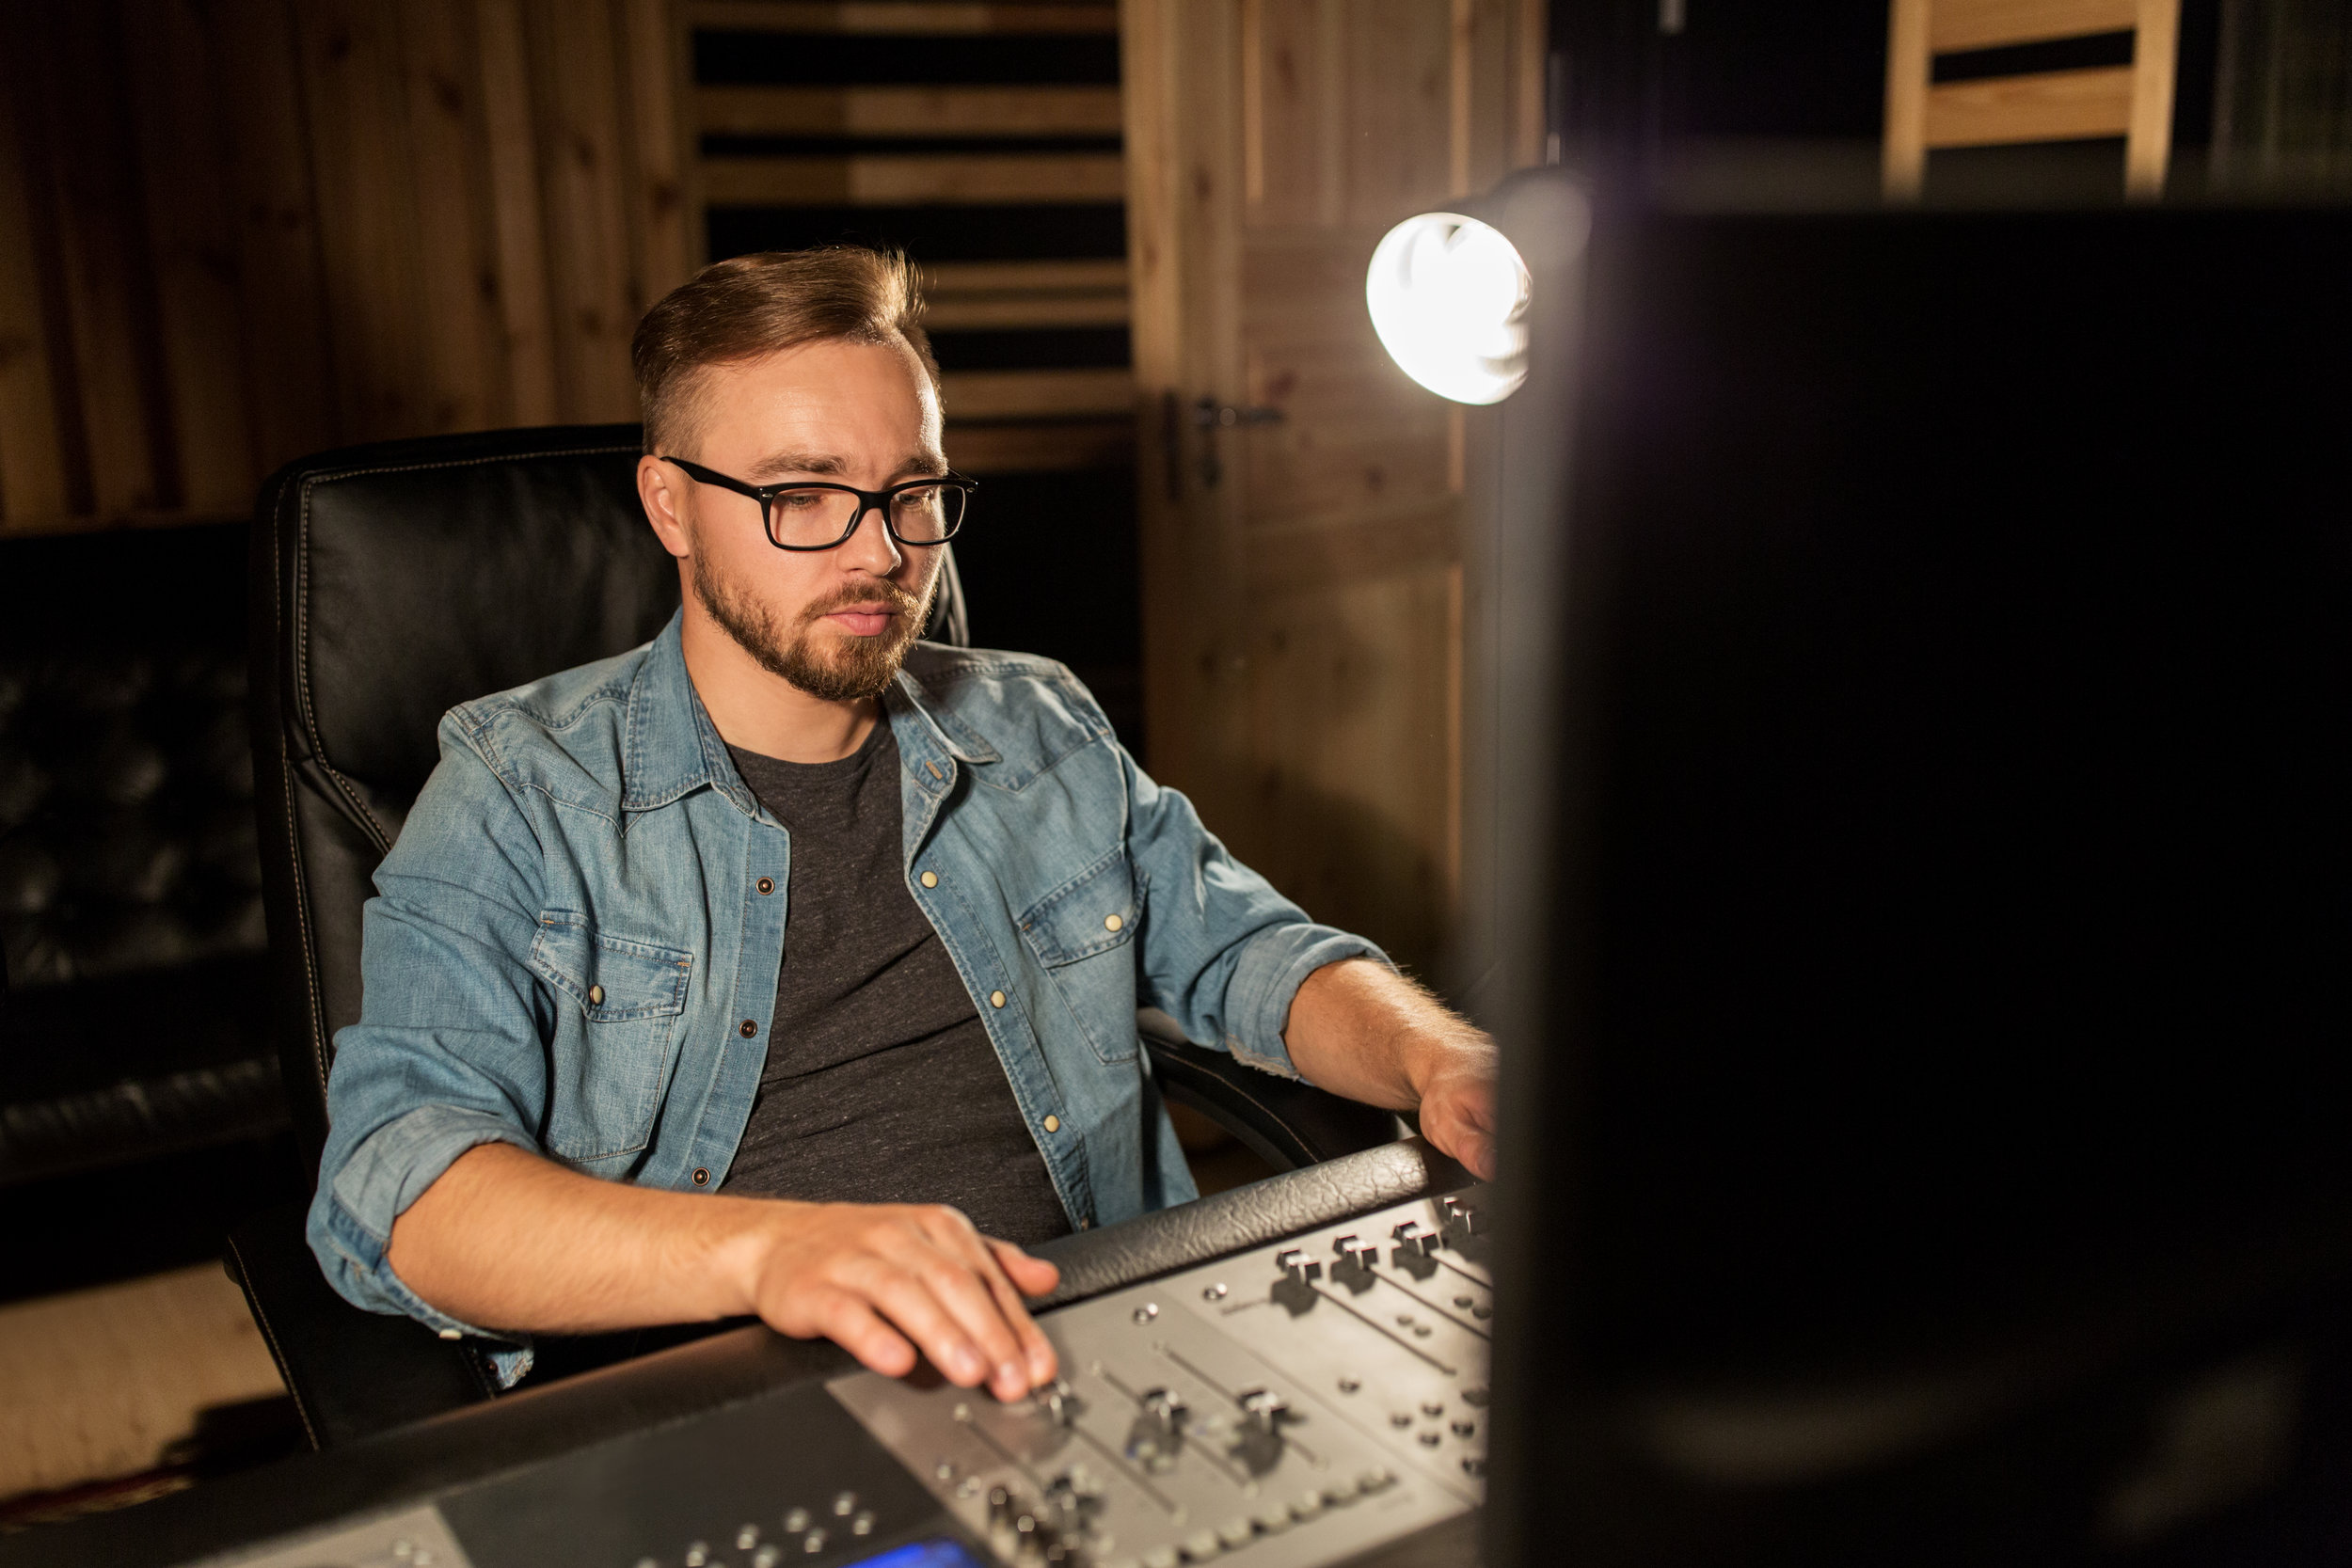 Music engineering is one example of how creative skills can be put to use in the sector.